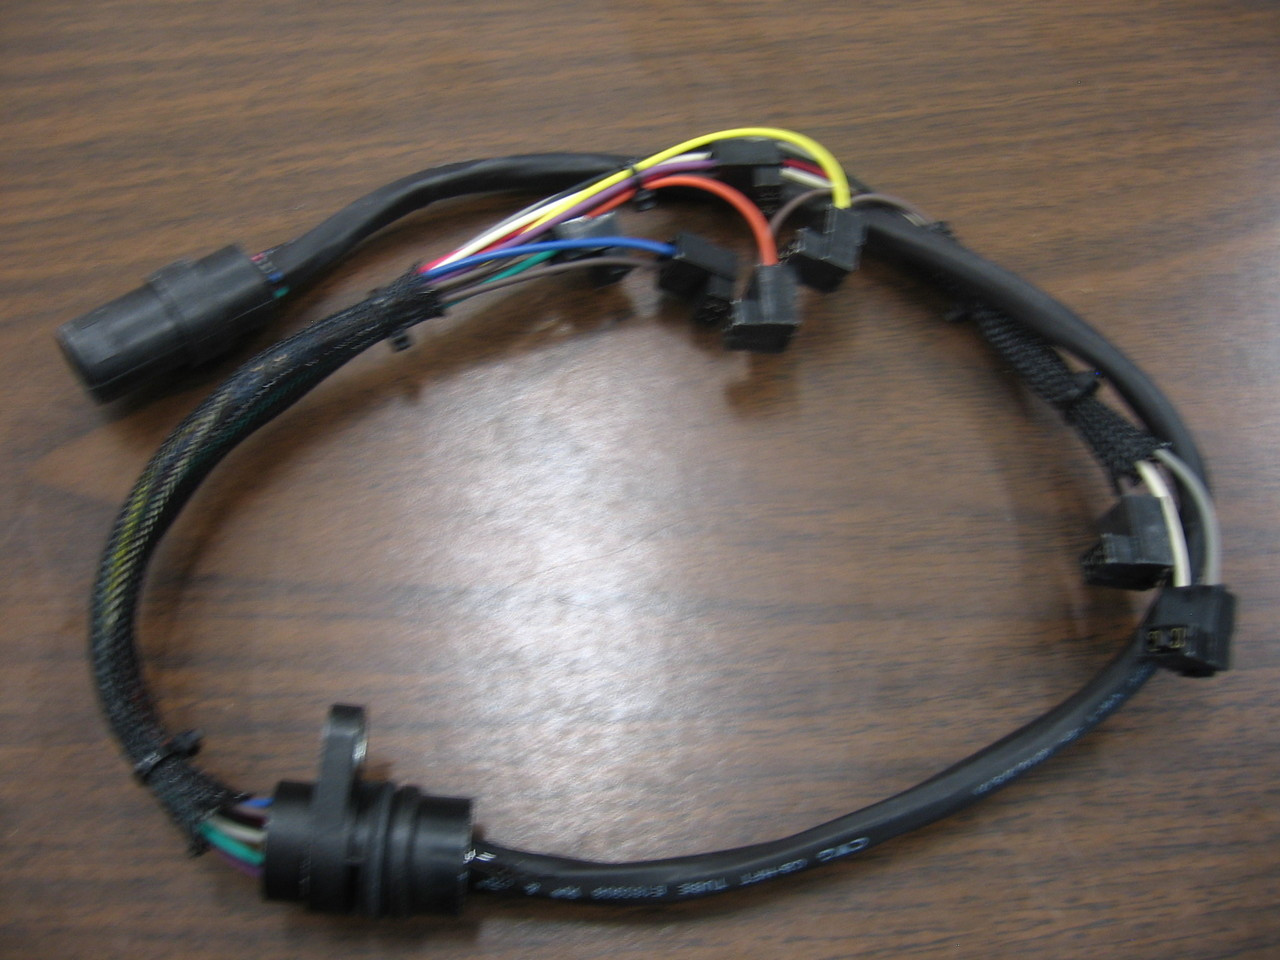 hight resolution of 4r100 internal wire harness wiring diagram data val 4r100 internal wire harness source ford e4od 4r100 solenoid connector repair